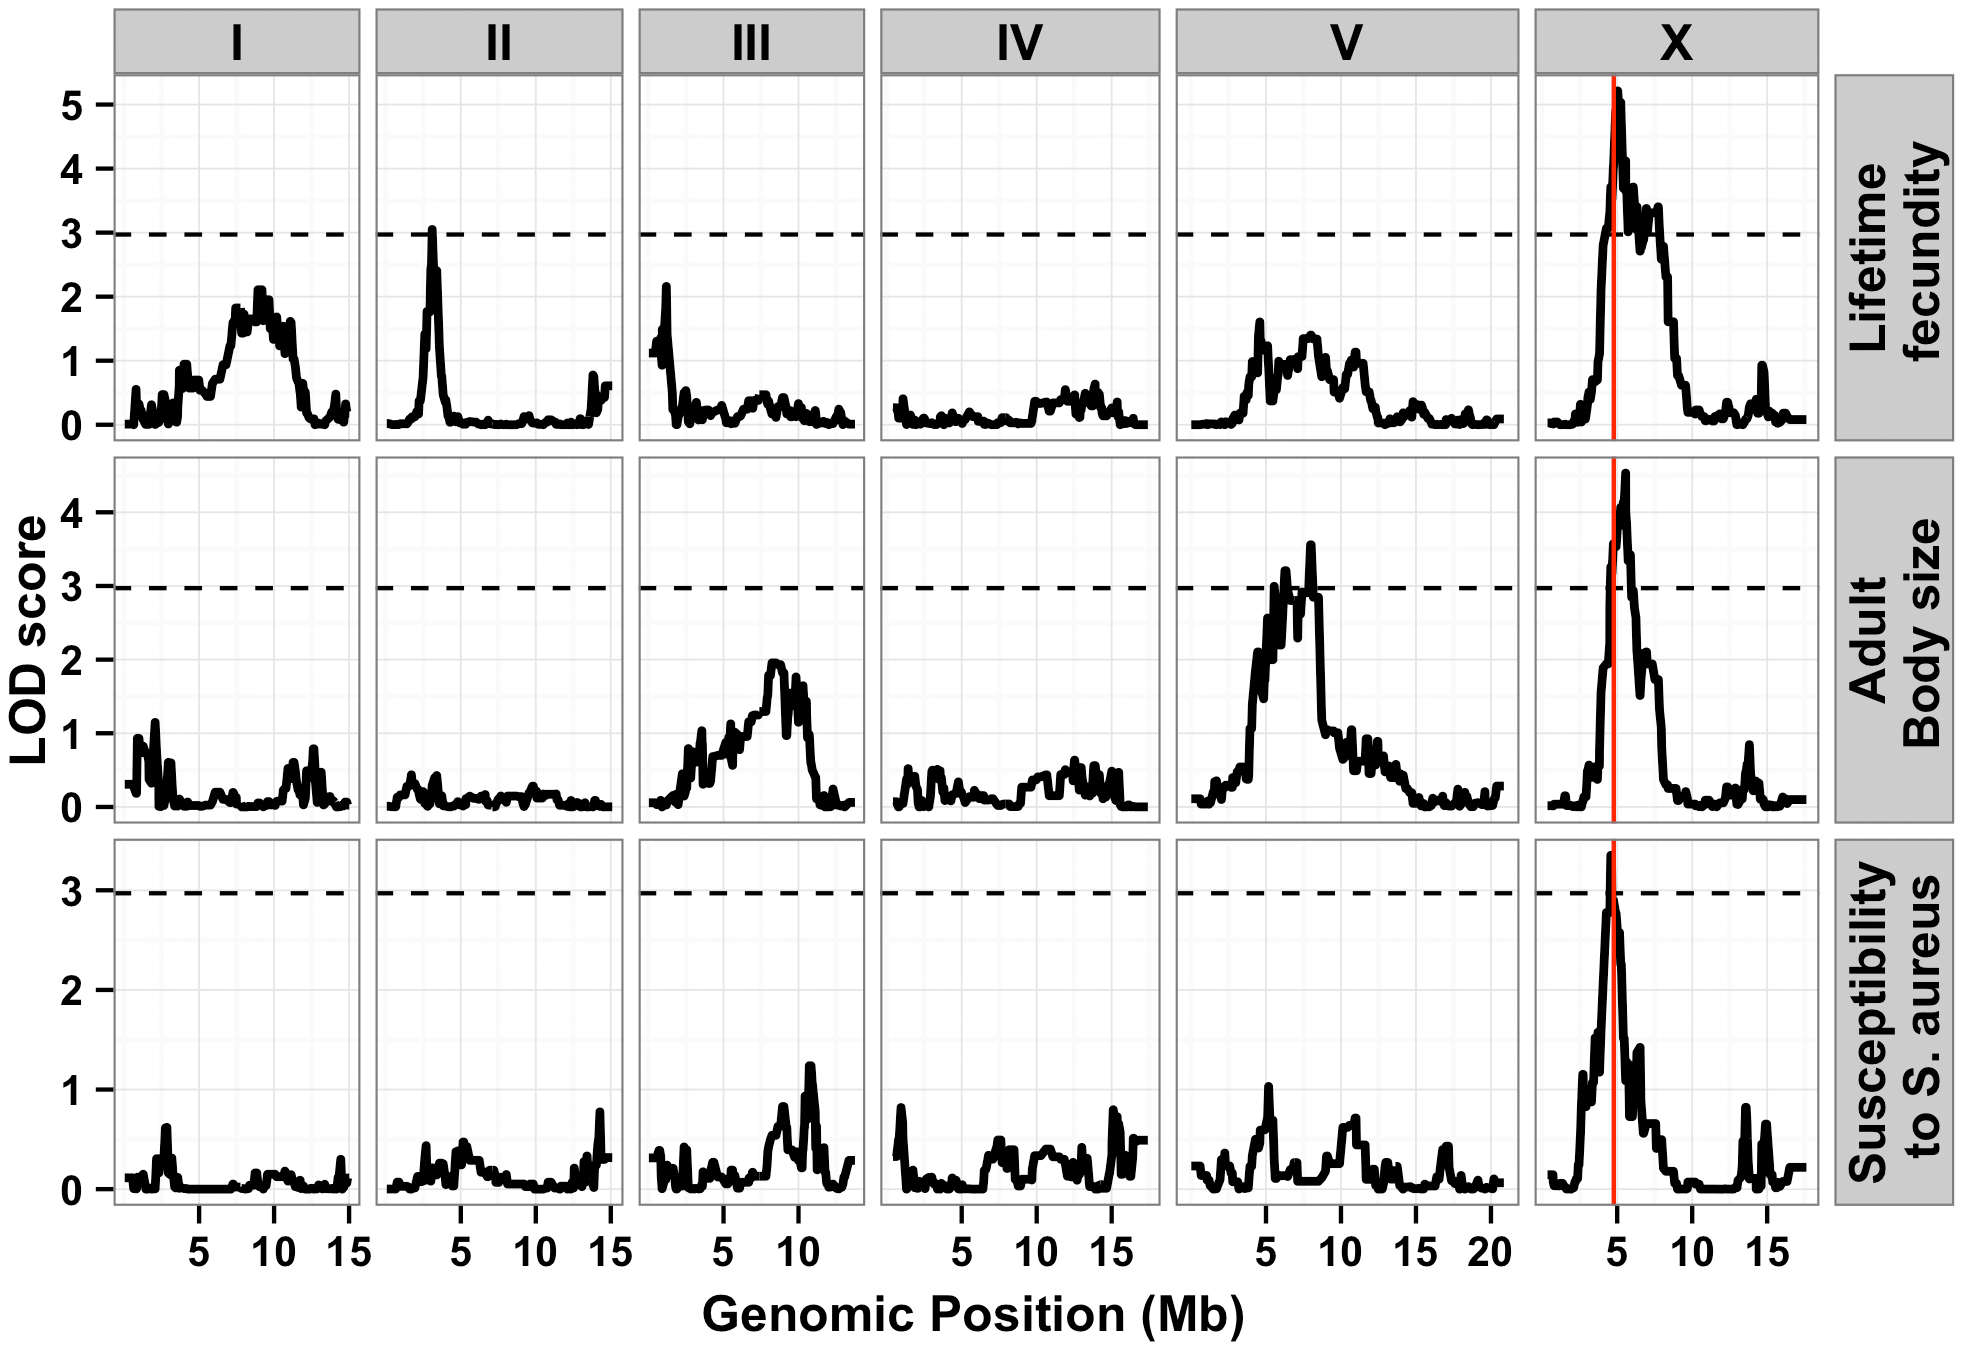 Linkage mapping results for lifetime fecundity, adult body size, and susceptibility to <i>S. aureus.</i>